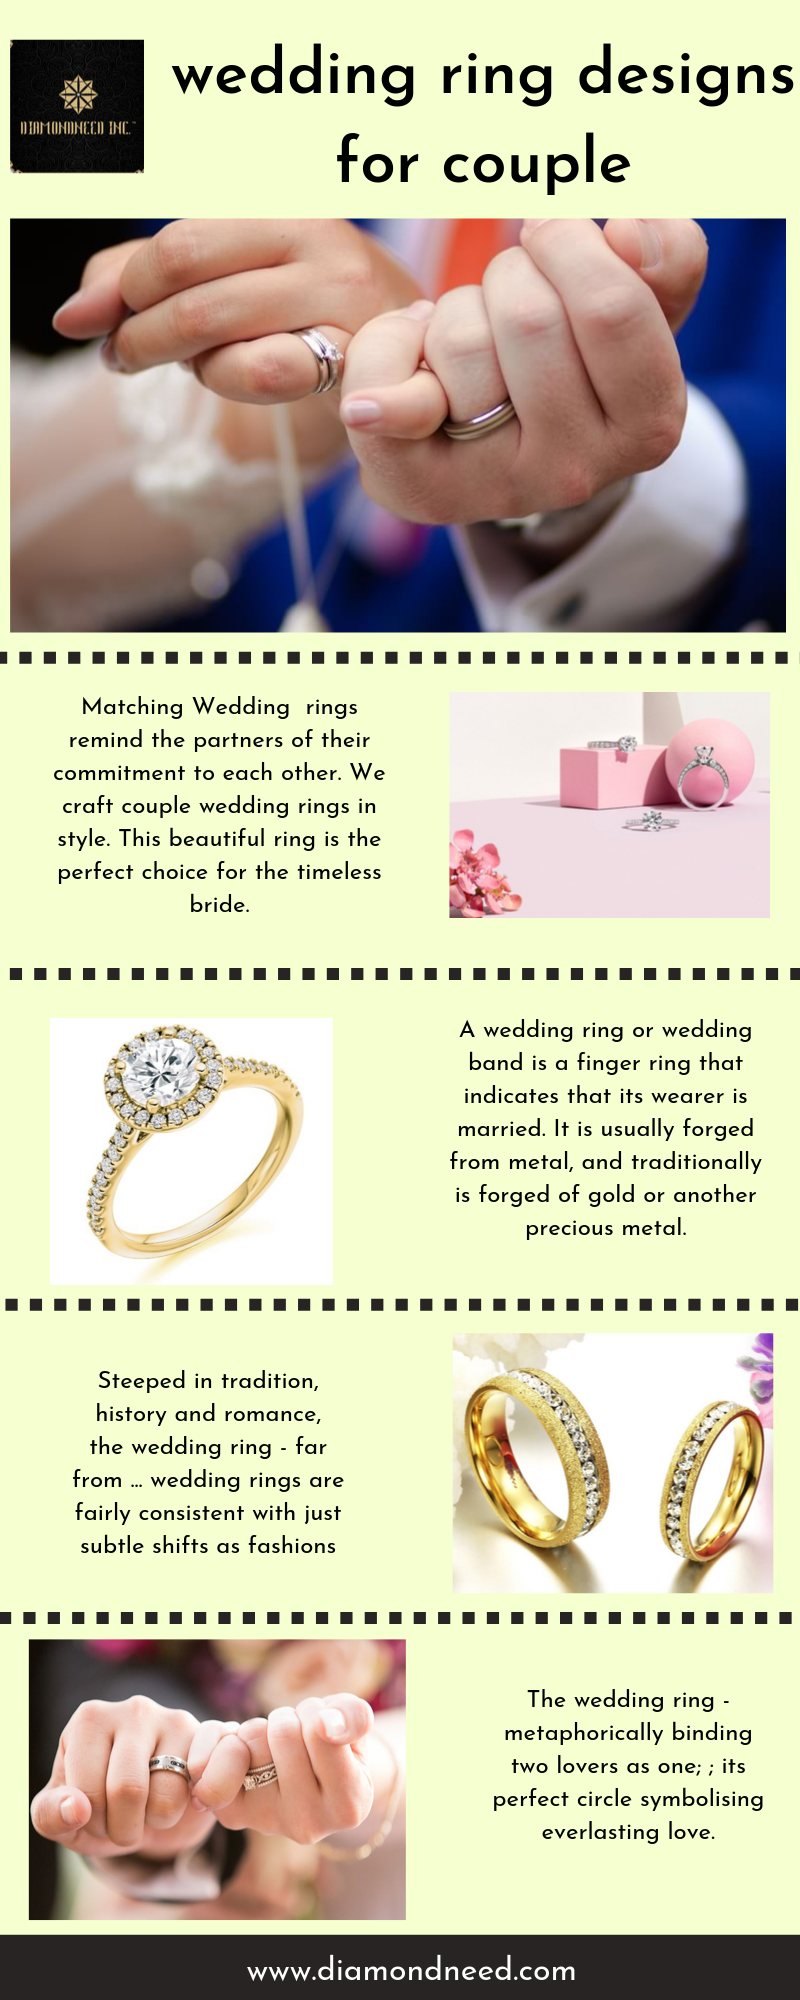 Wedding Ring Designs For Couple Matching Wedding Rings Remind The By Diamondneed Inc Medium